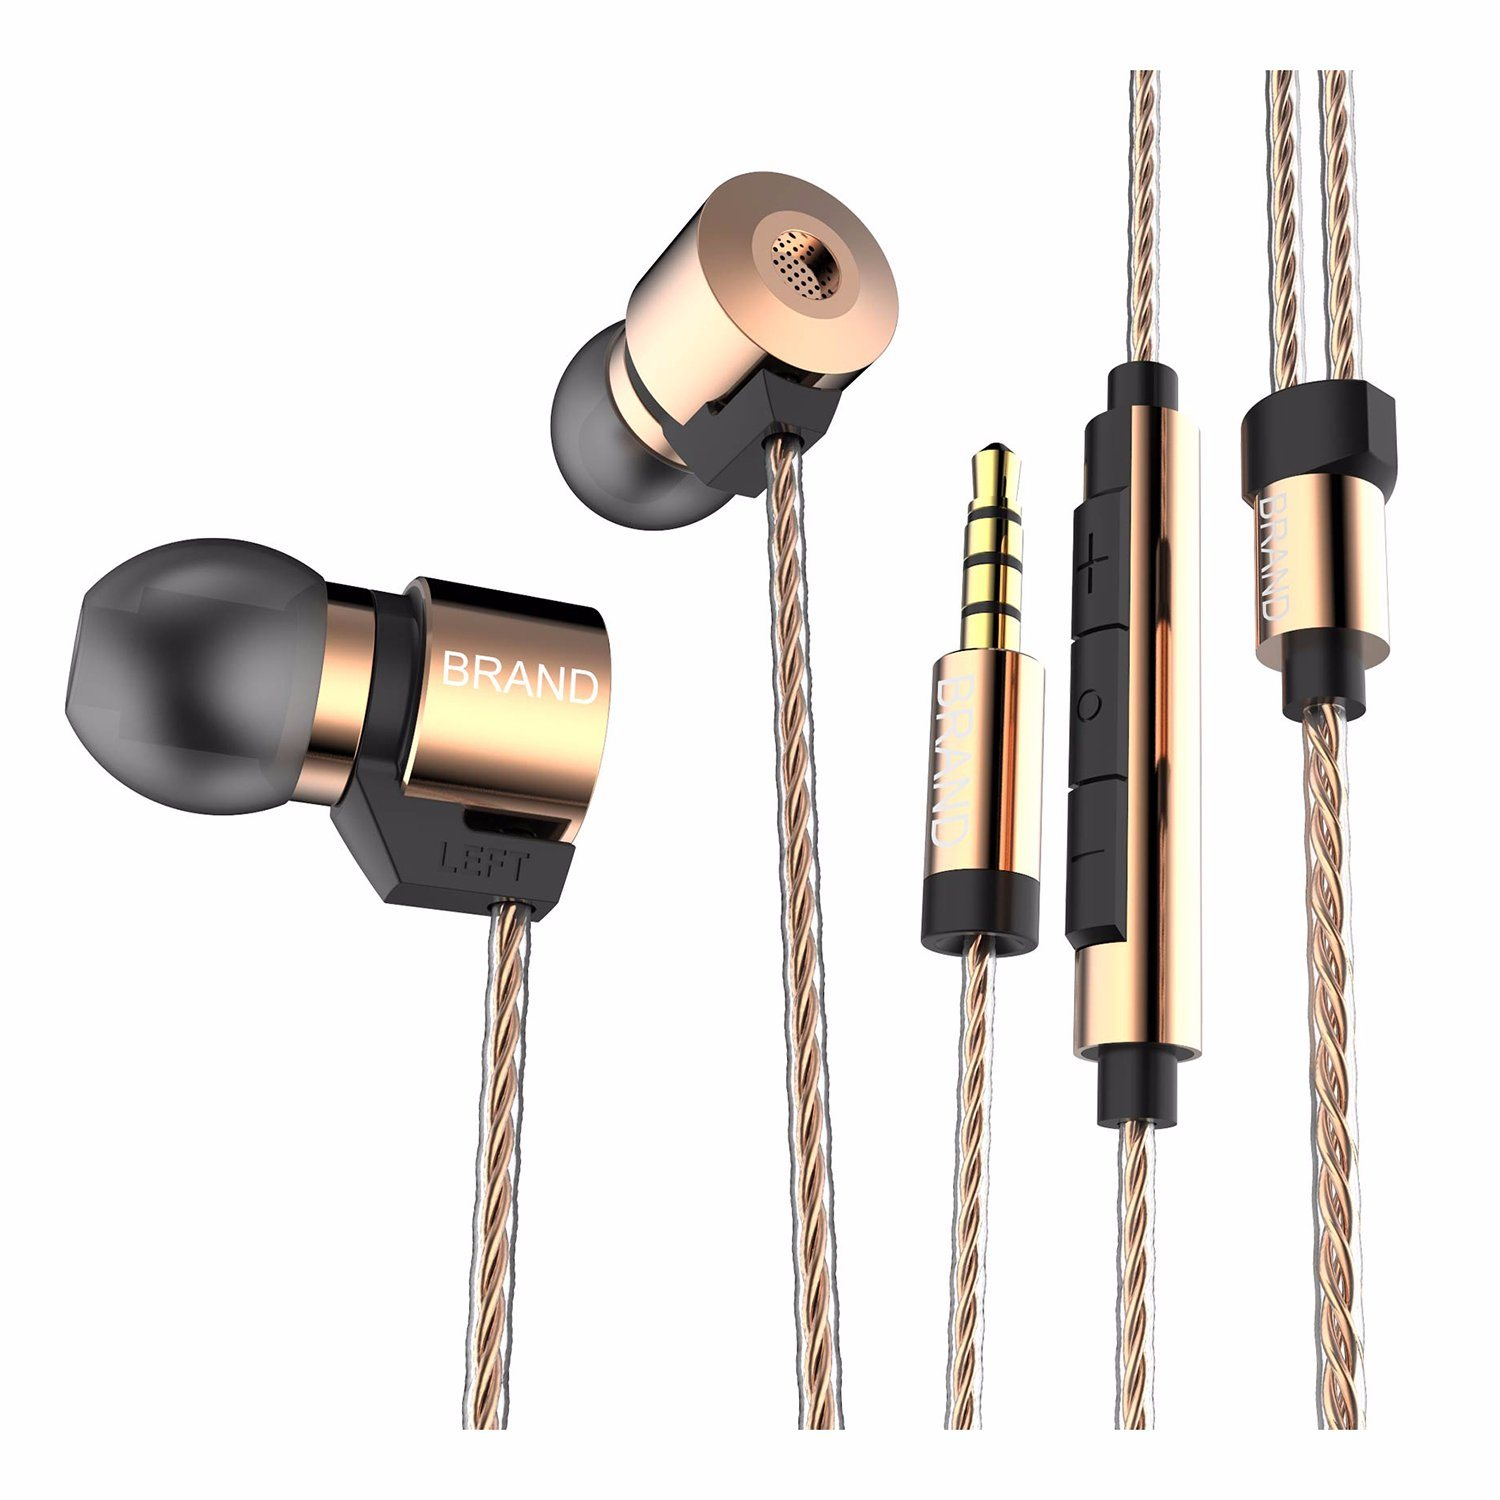 Triple Driver One Dynamic and Dual Ba Hybrid in Ear Earphone Earbuds Fashion Gifts Sport